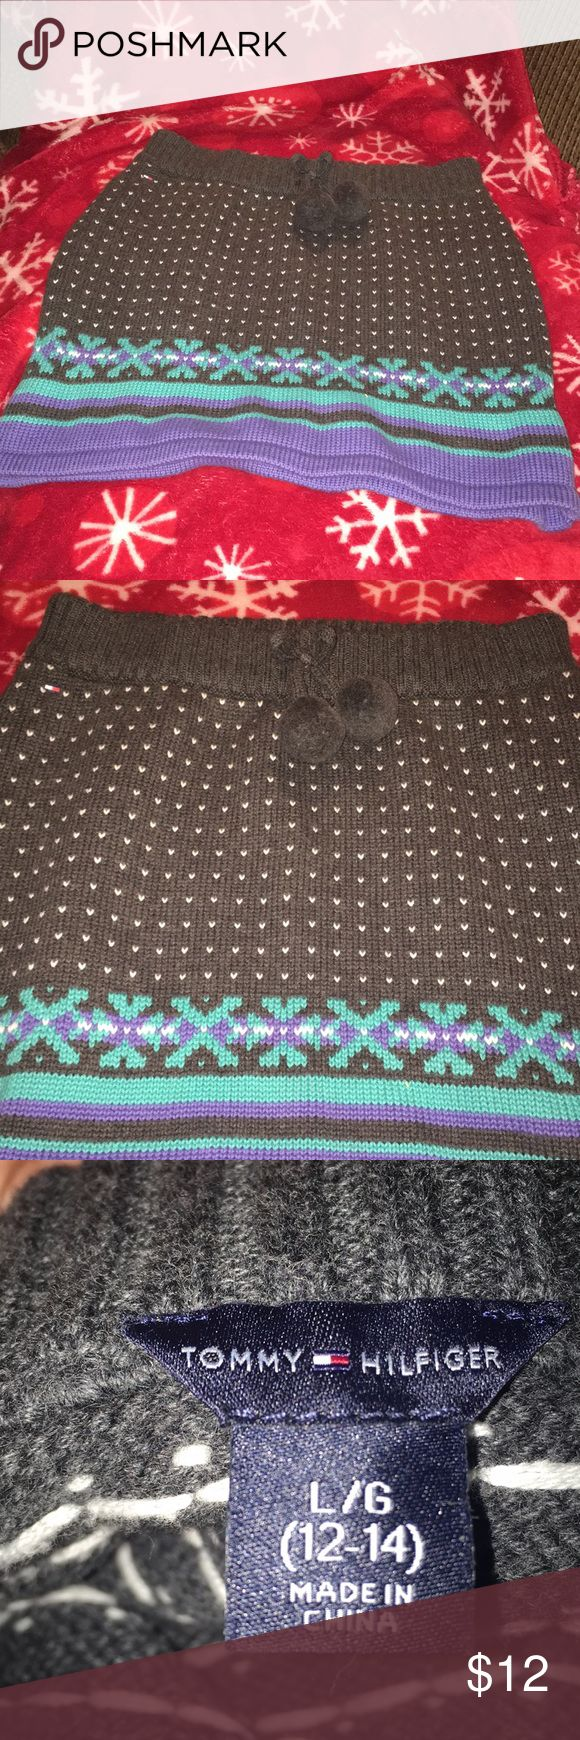 Tommy Hilfiger Girls Sweater SKIRT. LIKE NEW 12/14 This is so nice !!!   Beautiful with a pair of tight or leggings for the winter ❄️ months.  Excellent condition !!   You will love it !!  ❤️❄️❤️ Tommy Hilfiger Bottoms Skirts